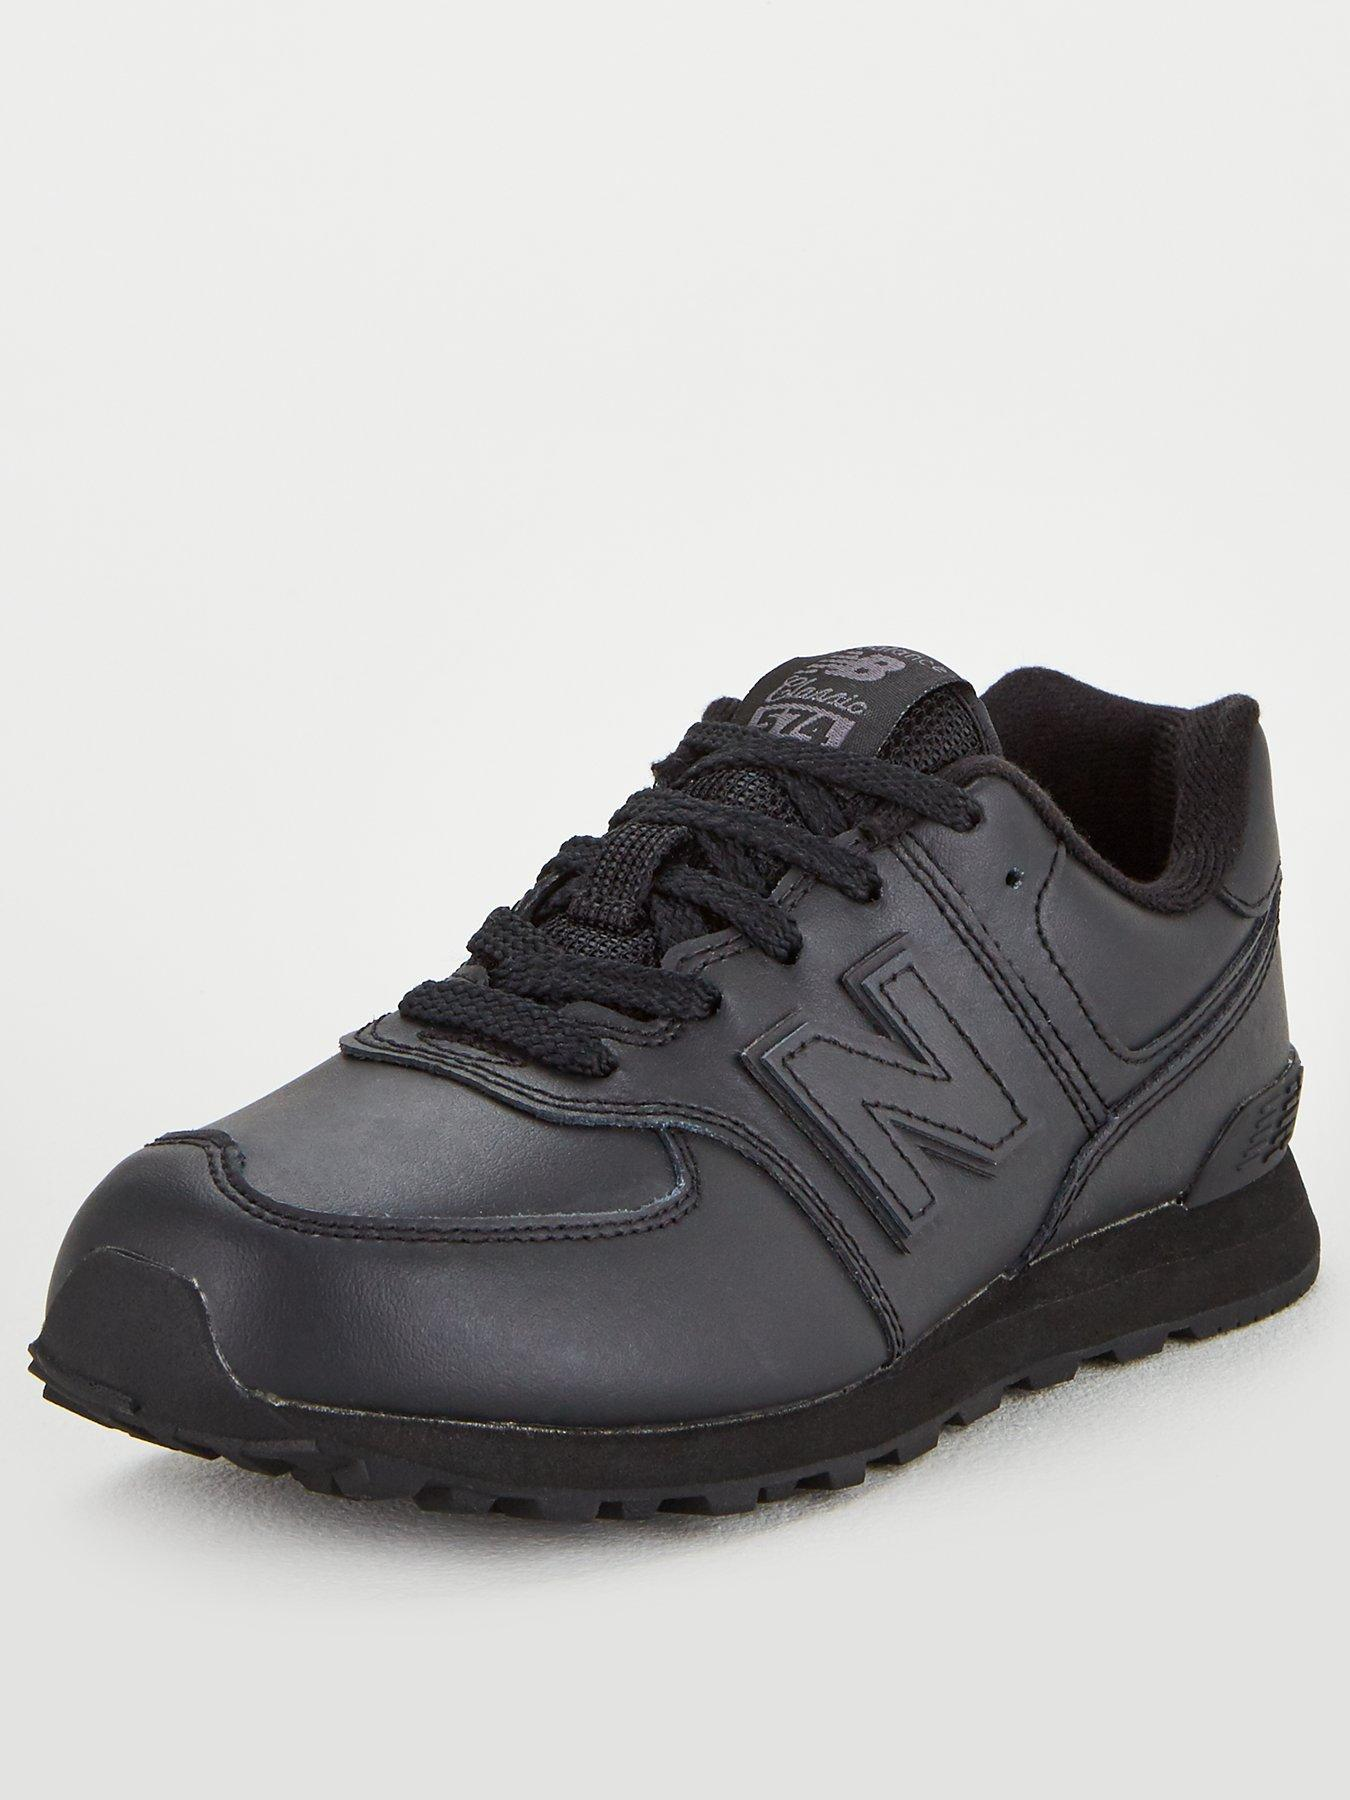 New balance | Kids & baby sports shoes | Sports & leisure